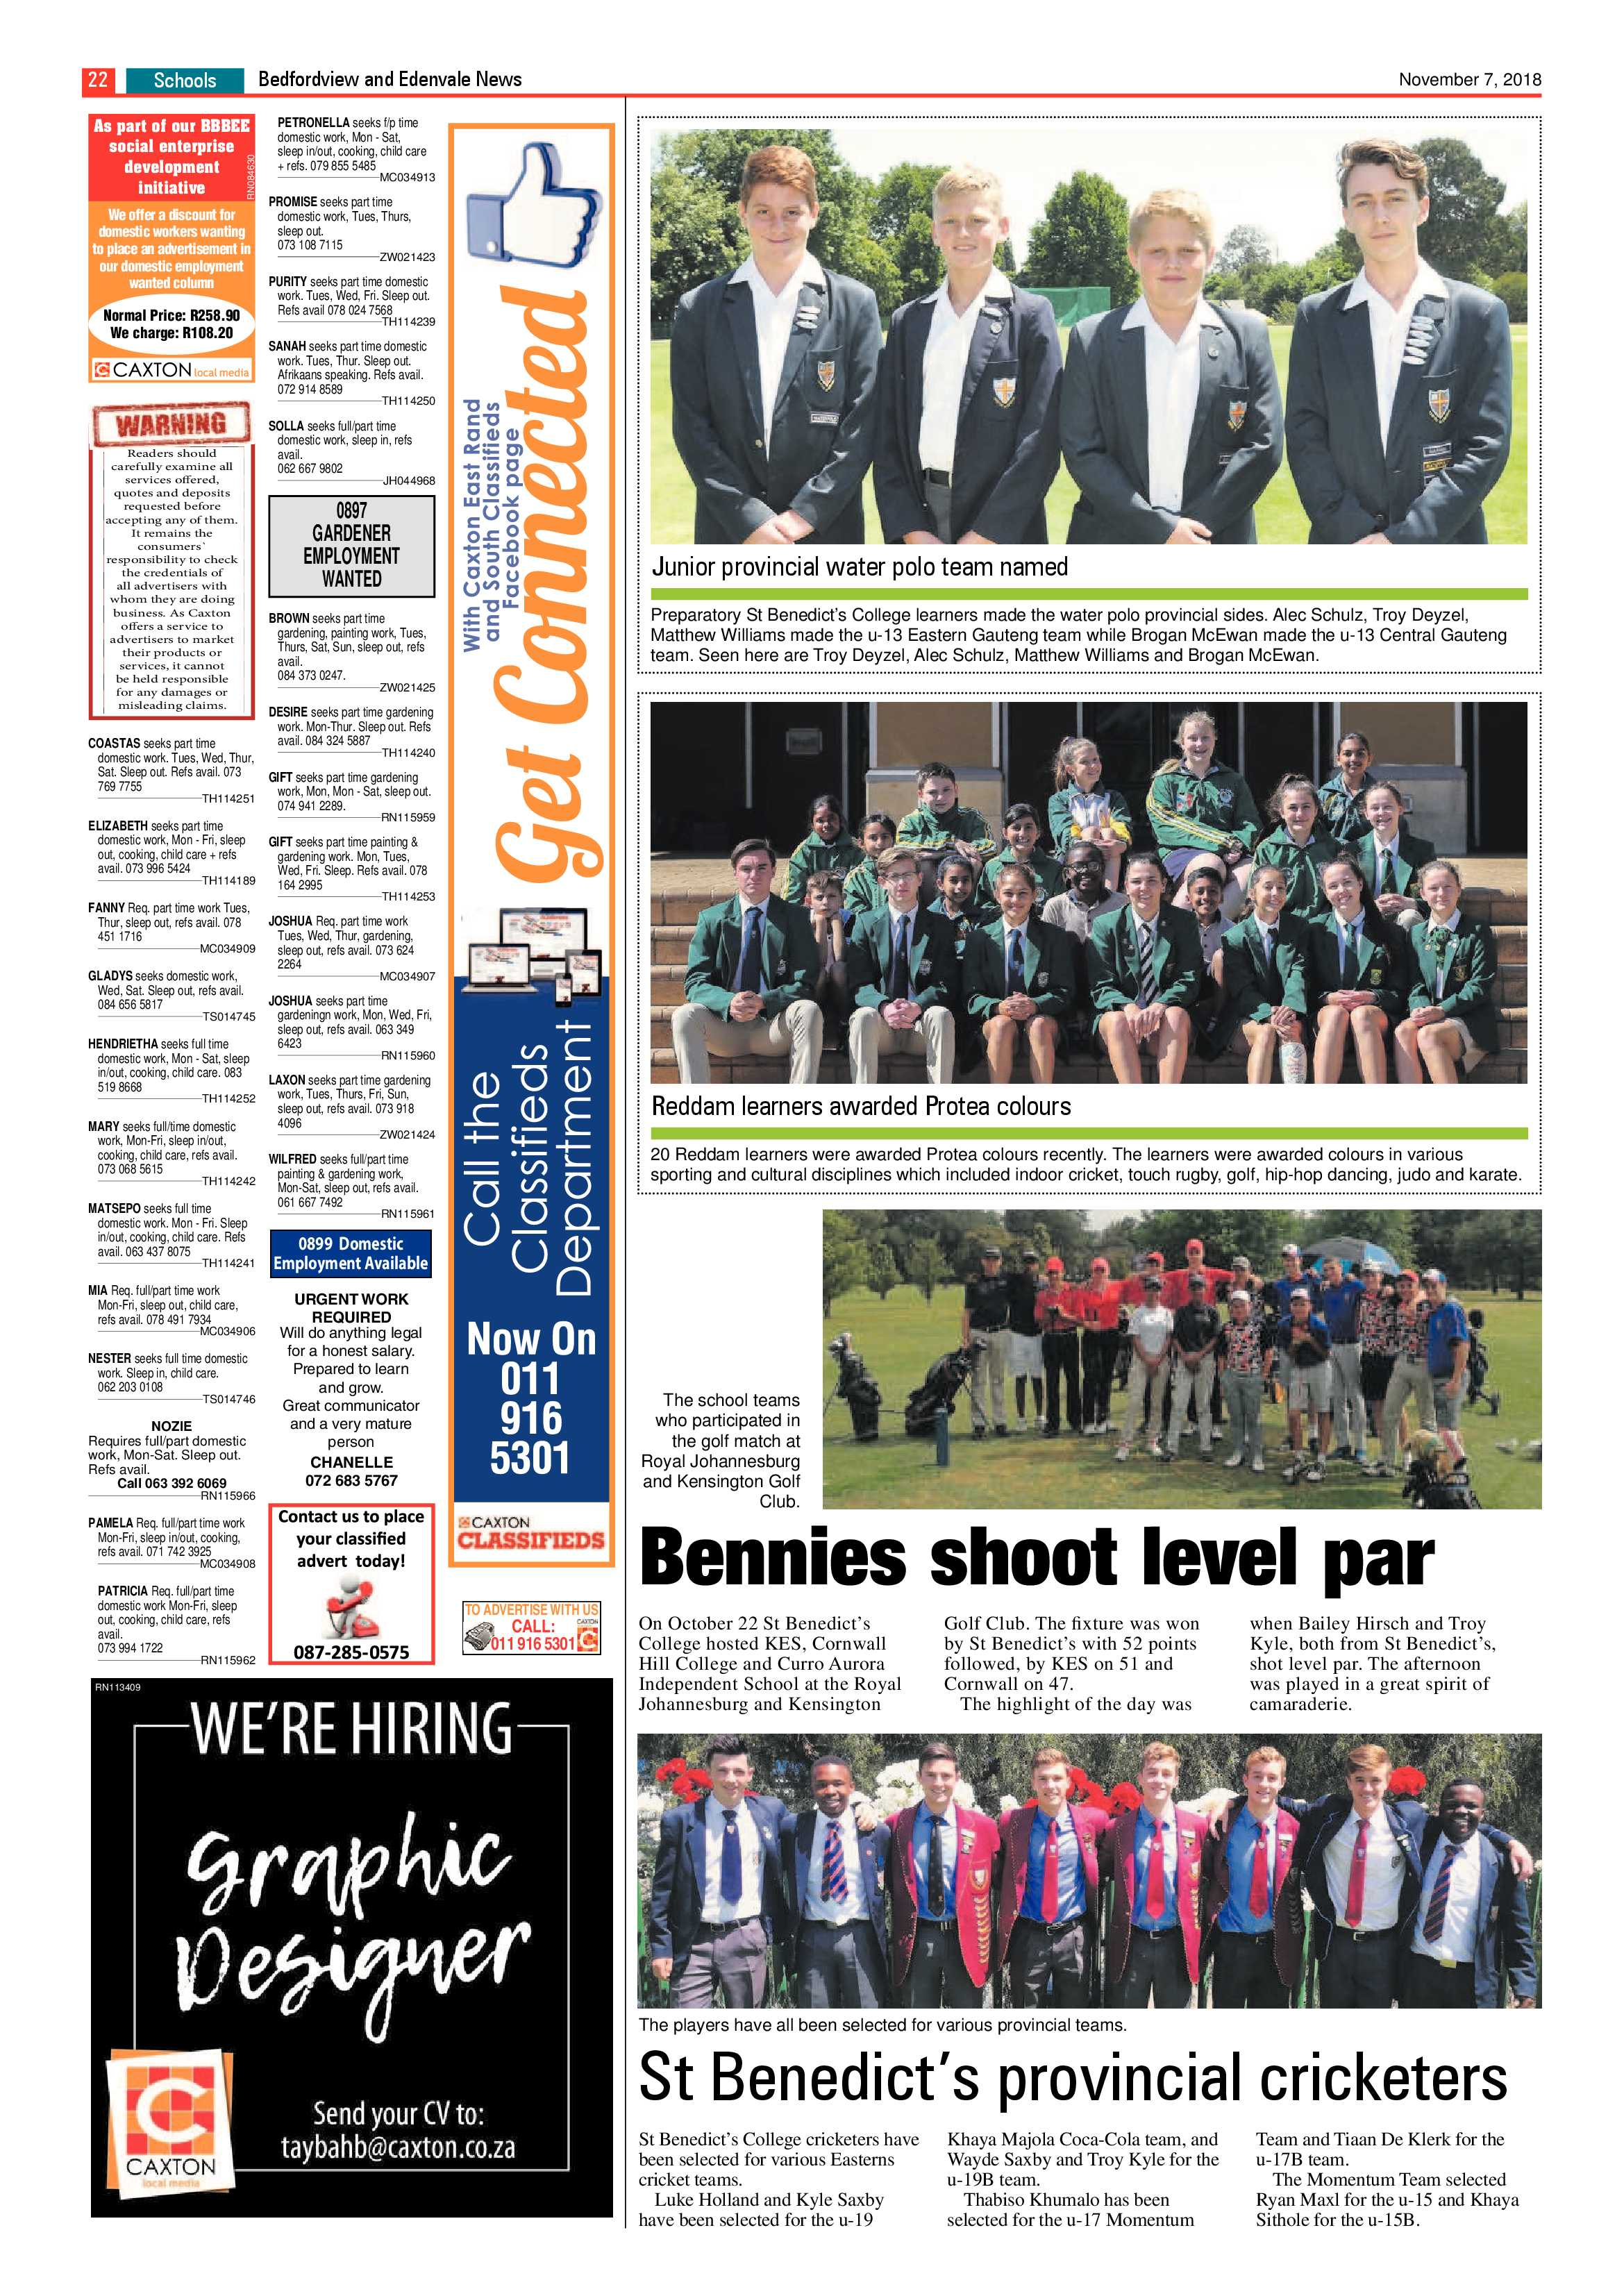 bedfordview-edenvale-news-07-november-2018-epapers-page-22